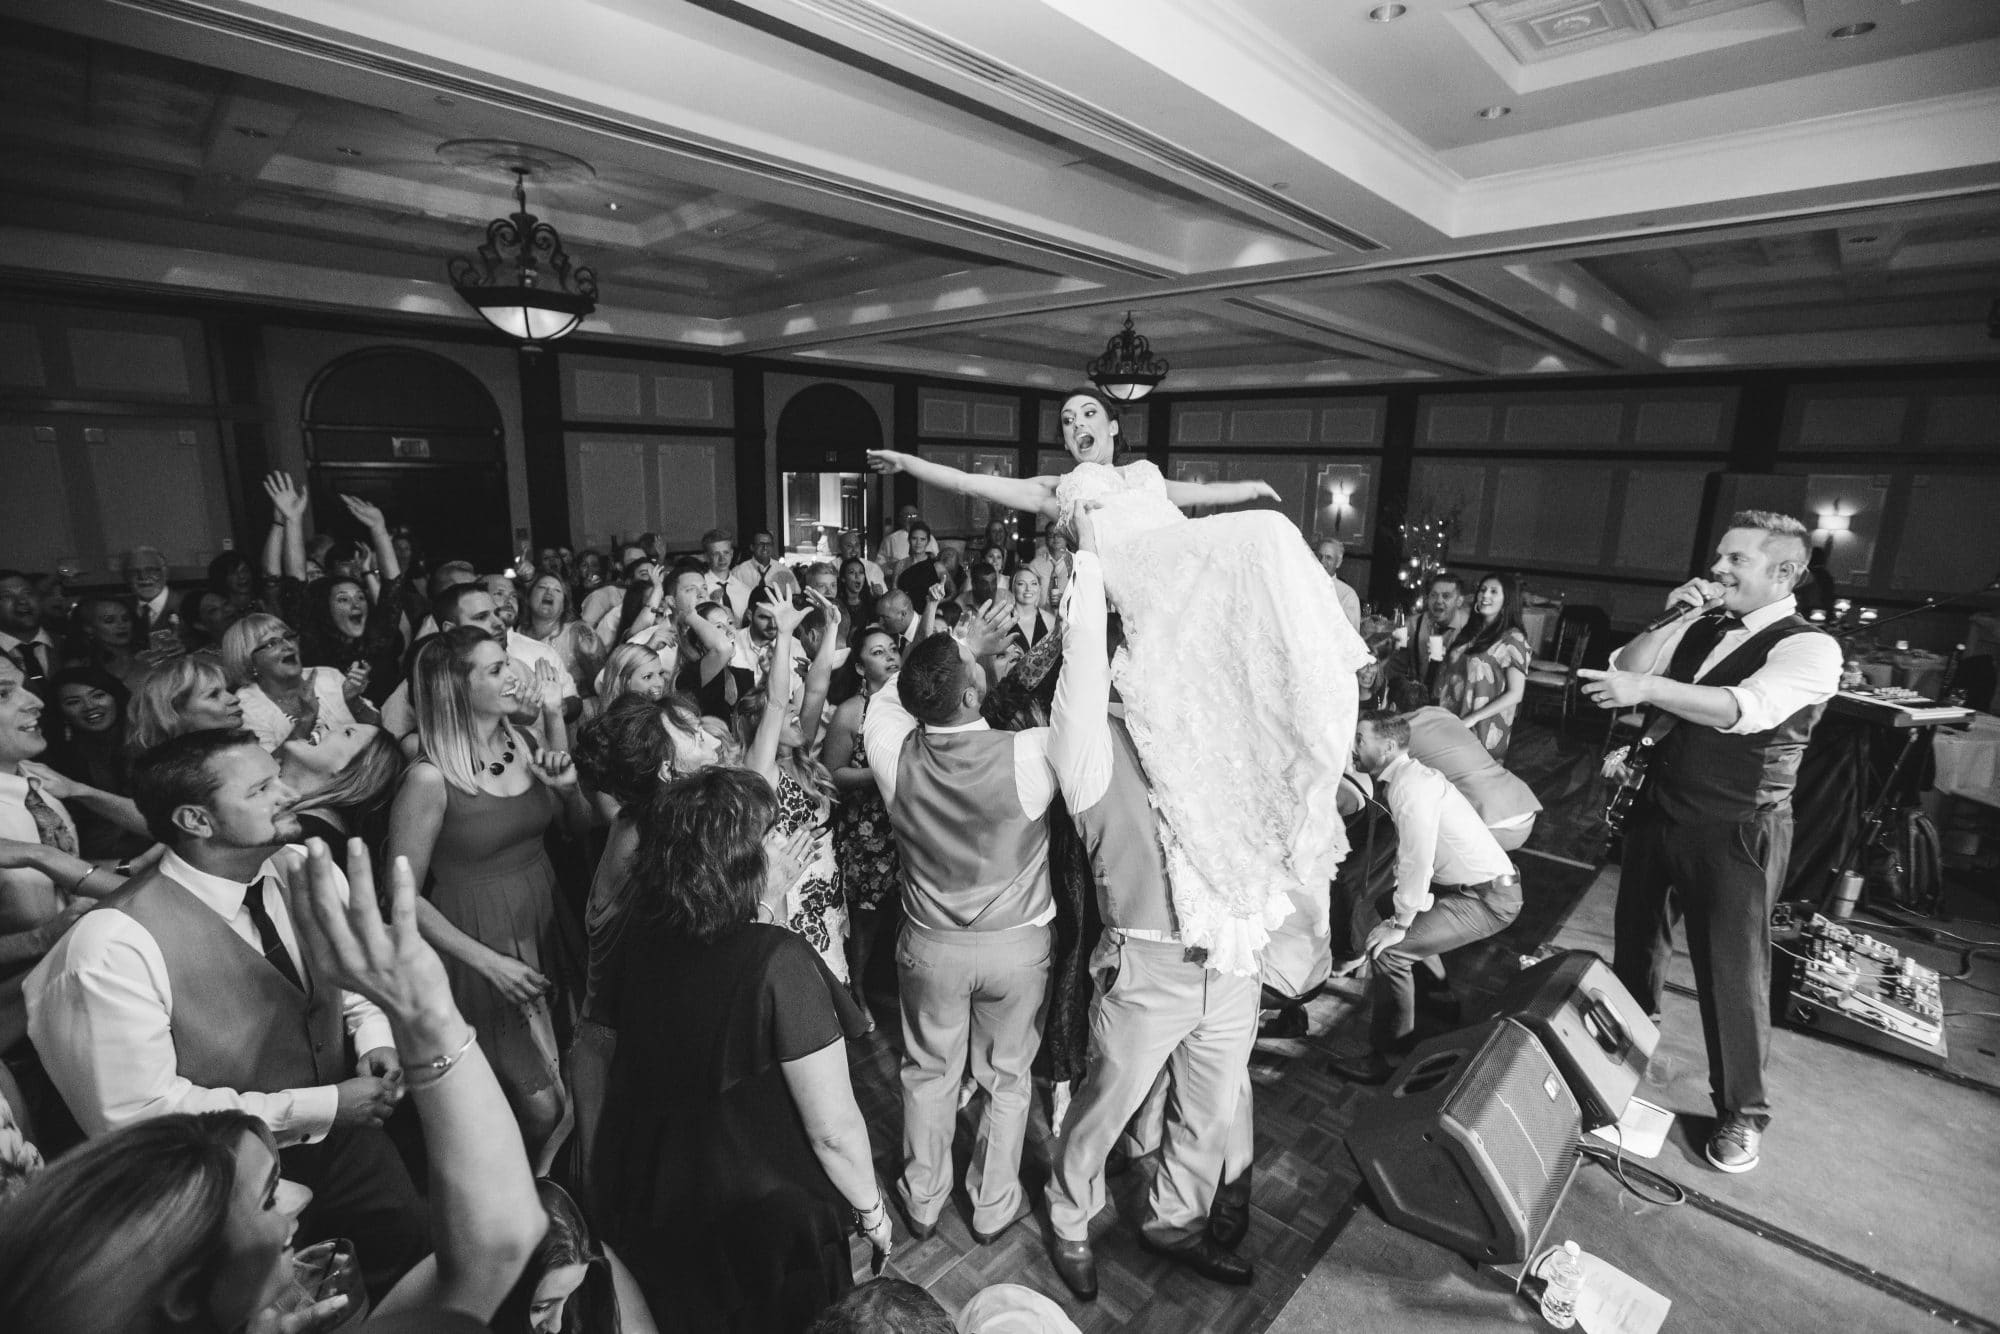 KMD Creations Photography and Film - bride crowdsurfing at wedding reception while band member sings